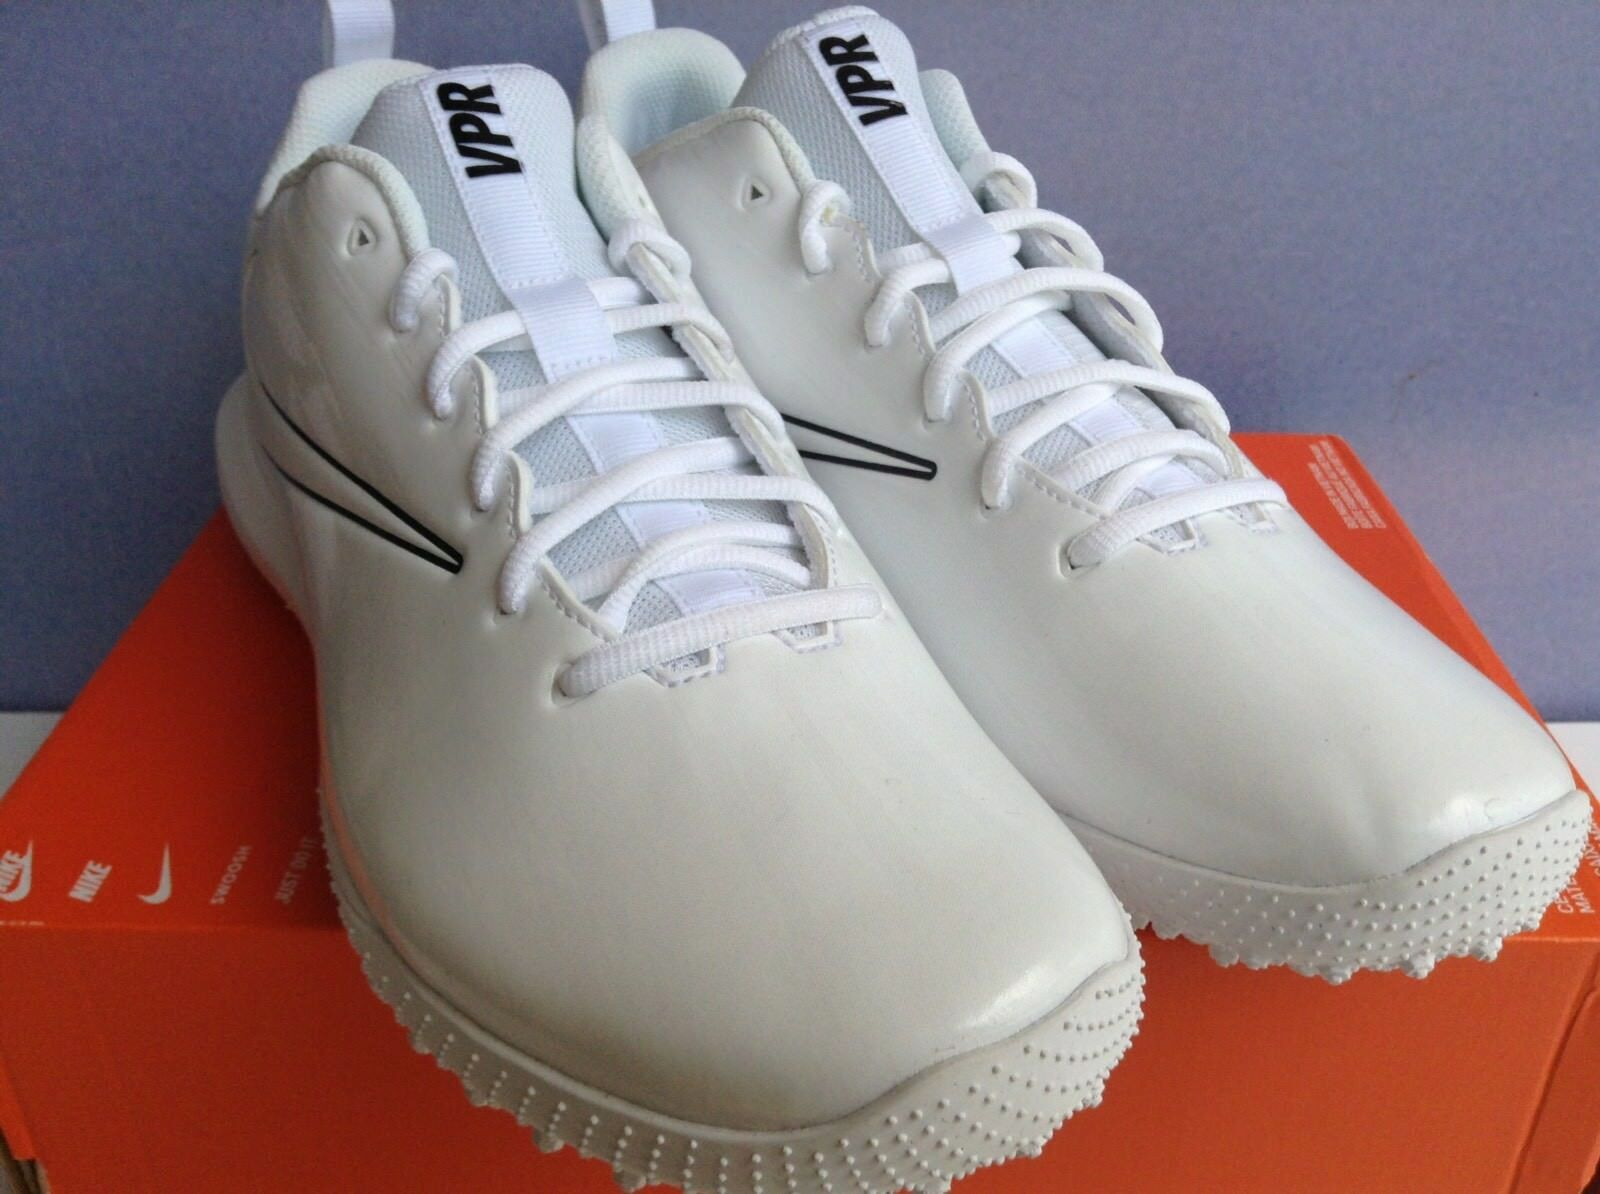 Nike Vapor Varsity Low Turf LAX  White Black Mns.Sz.12 (923492-110)